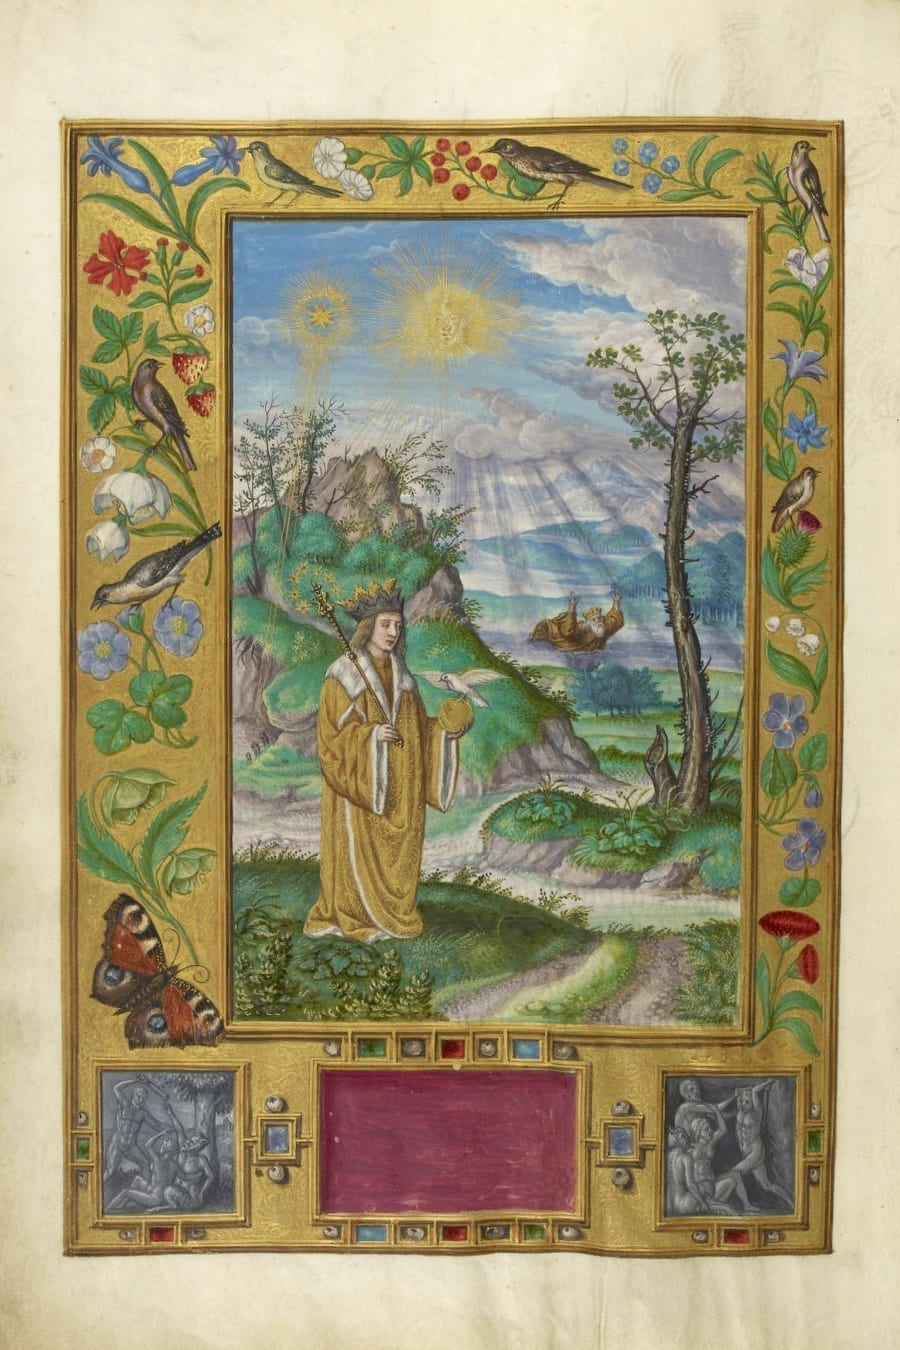 Illustration of drowning king from the Alchemical manuscript Splendor Solis